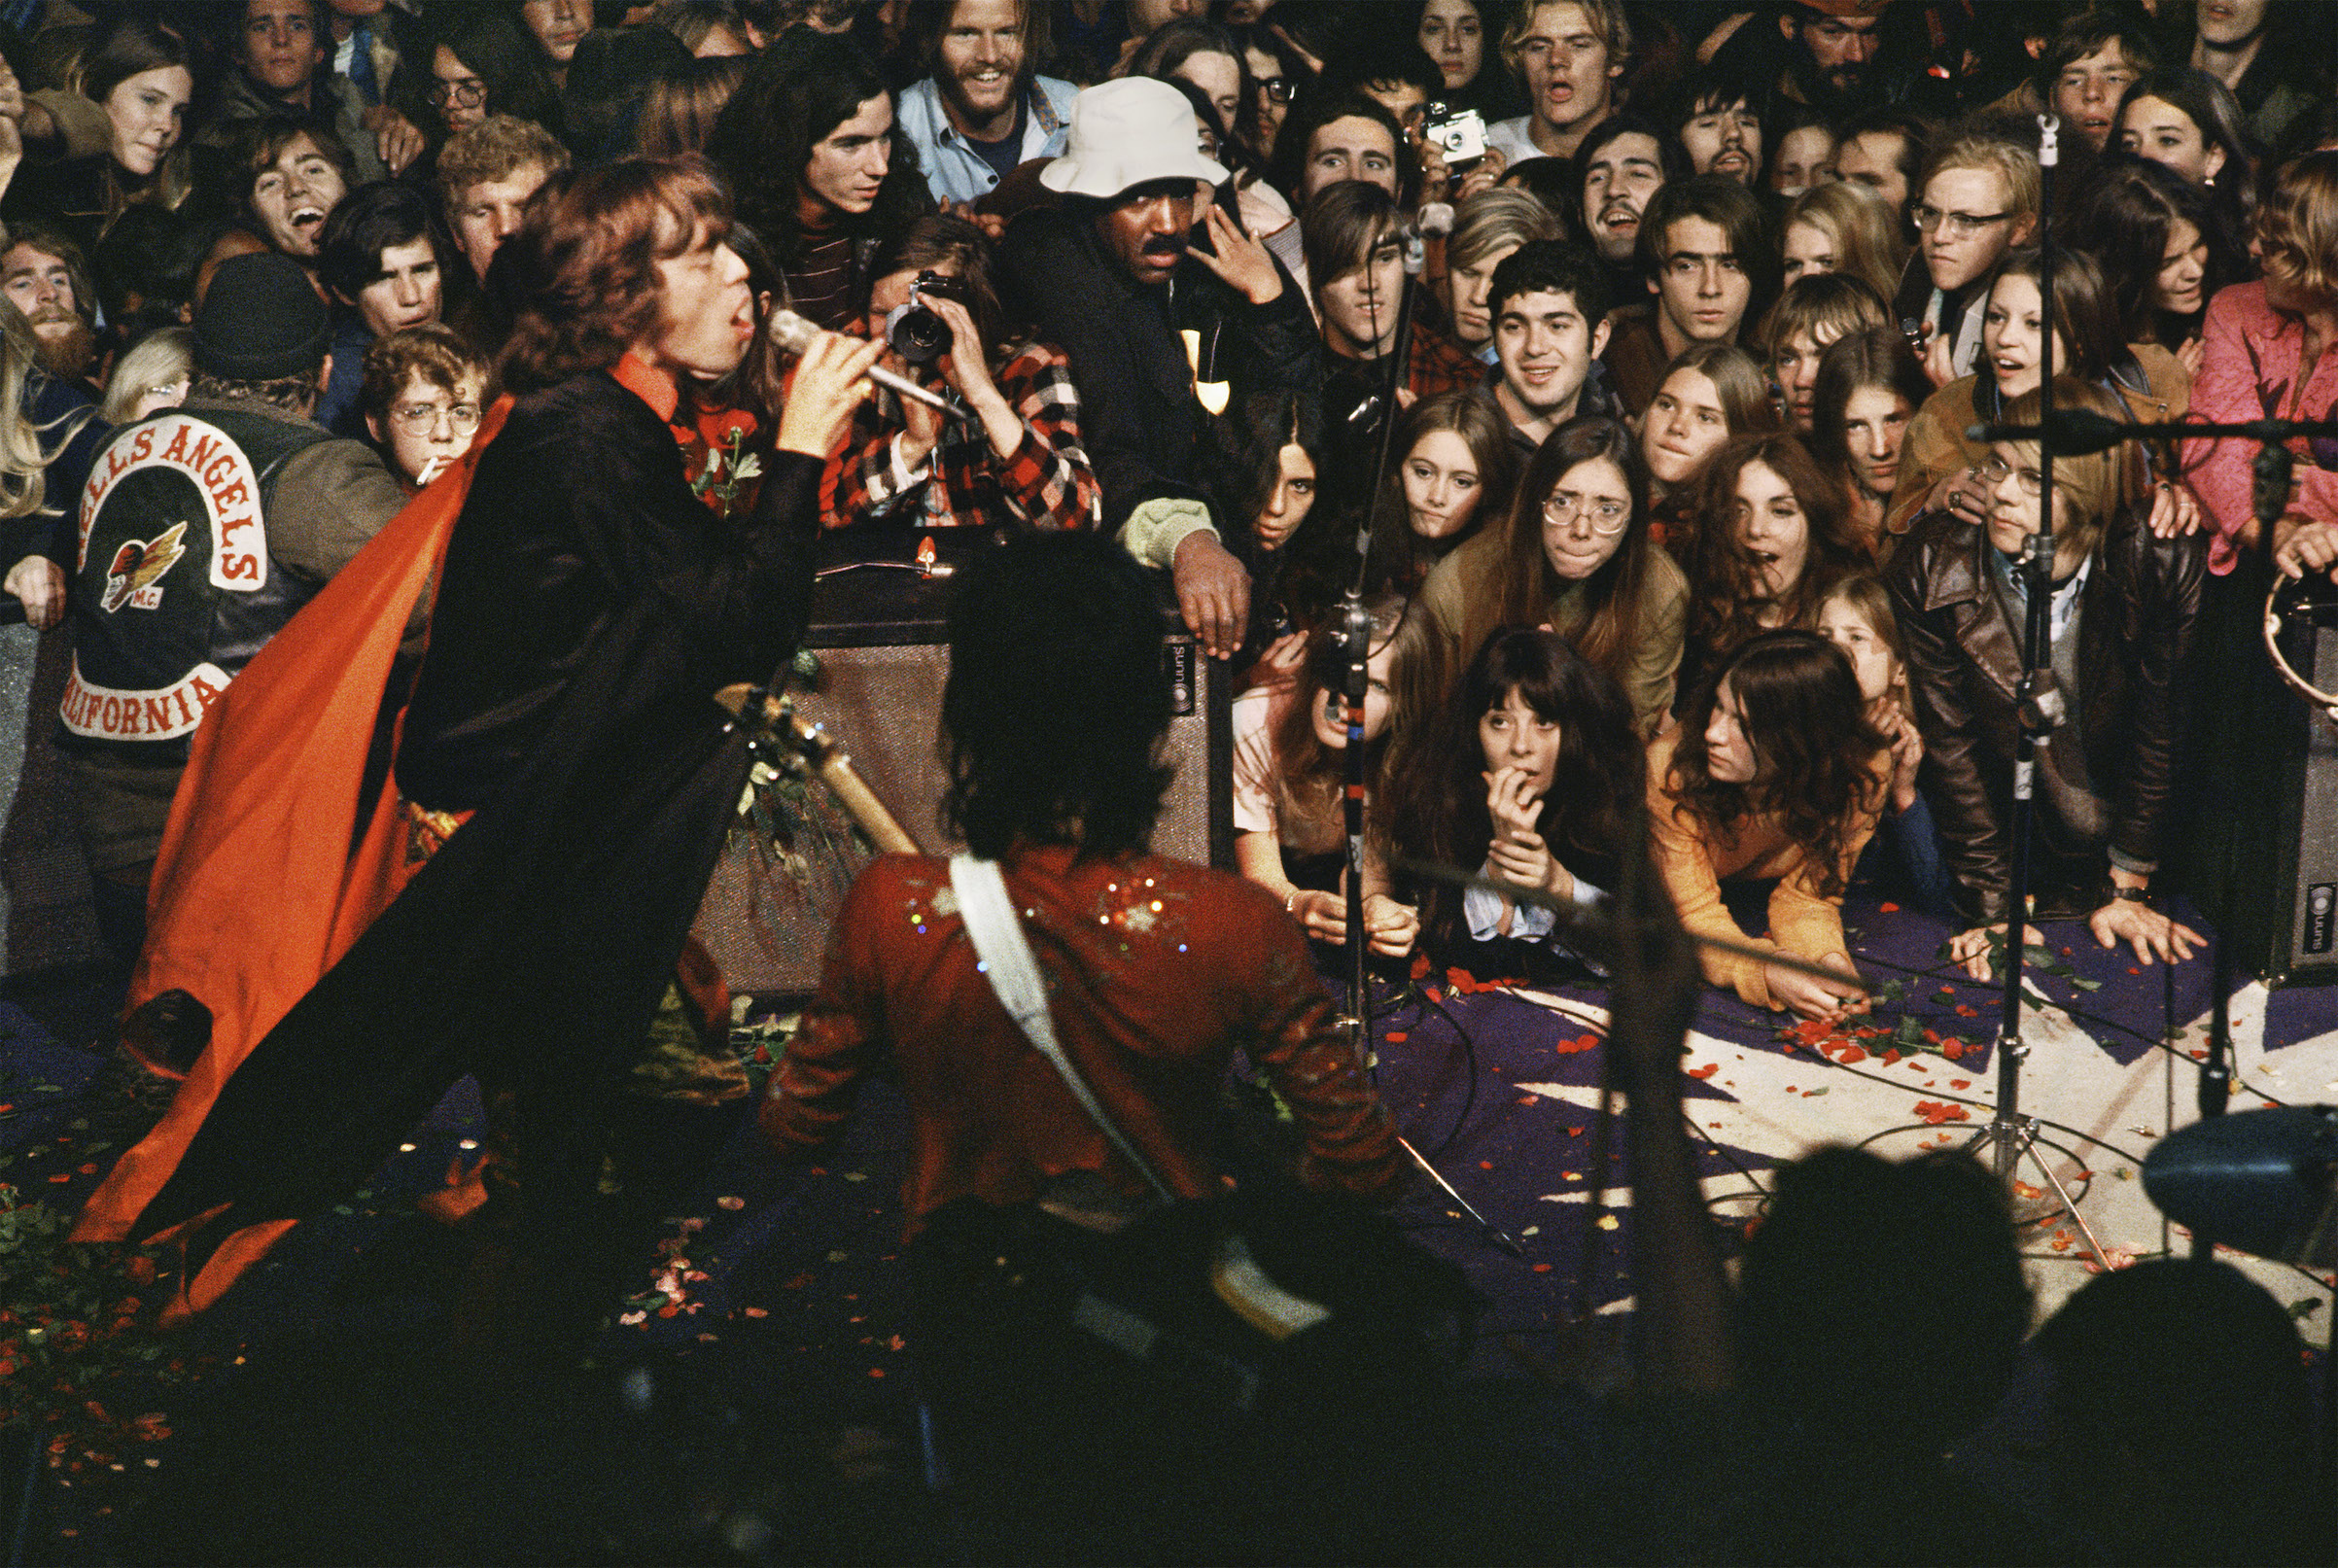 Mick Jagger on stage at Altamont. Dec. 6, 1969.